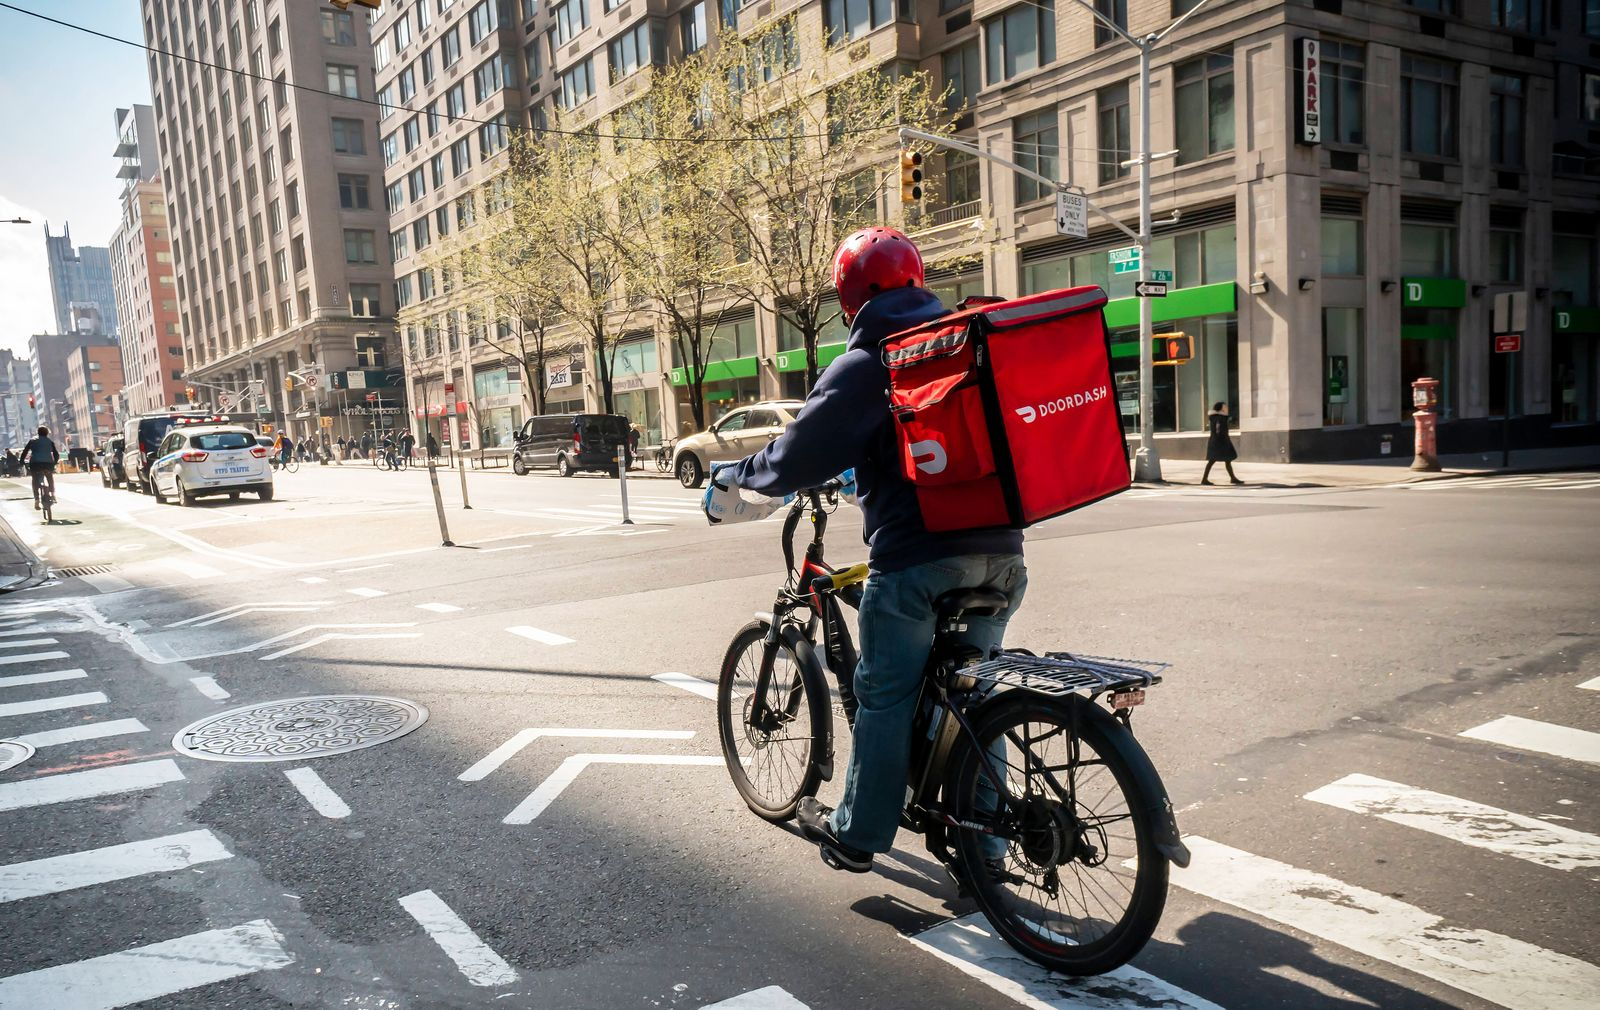 DoorDash internet based delivery service A delivery person with a DoorDash branded tote on his bicycle in the Chelsea ne